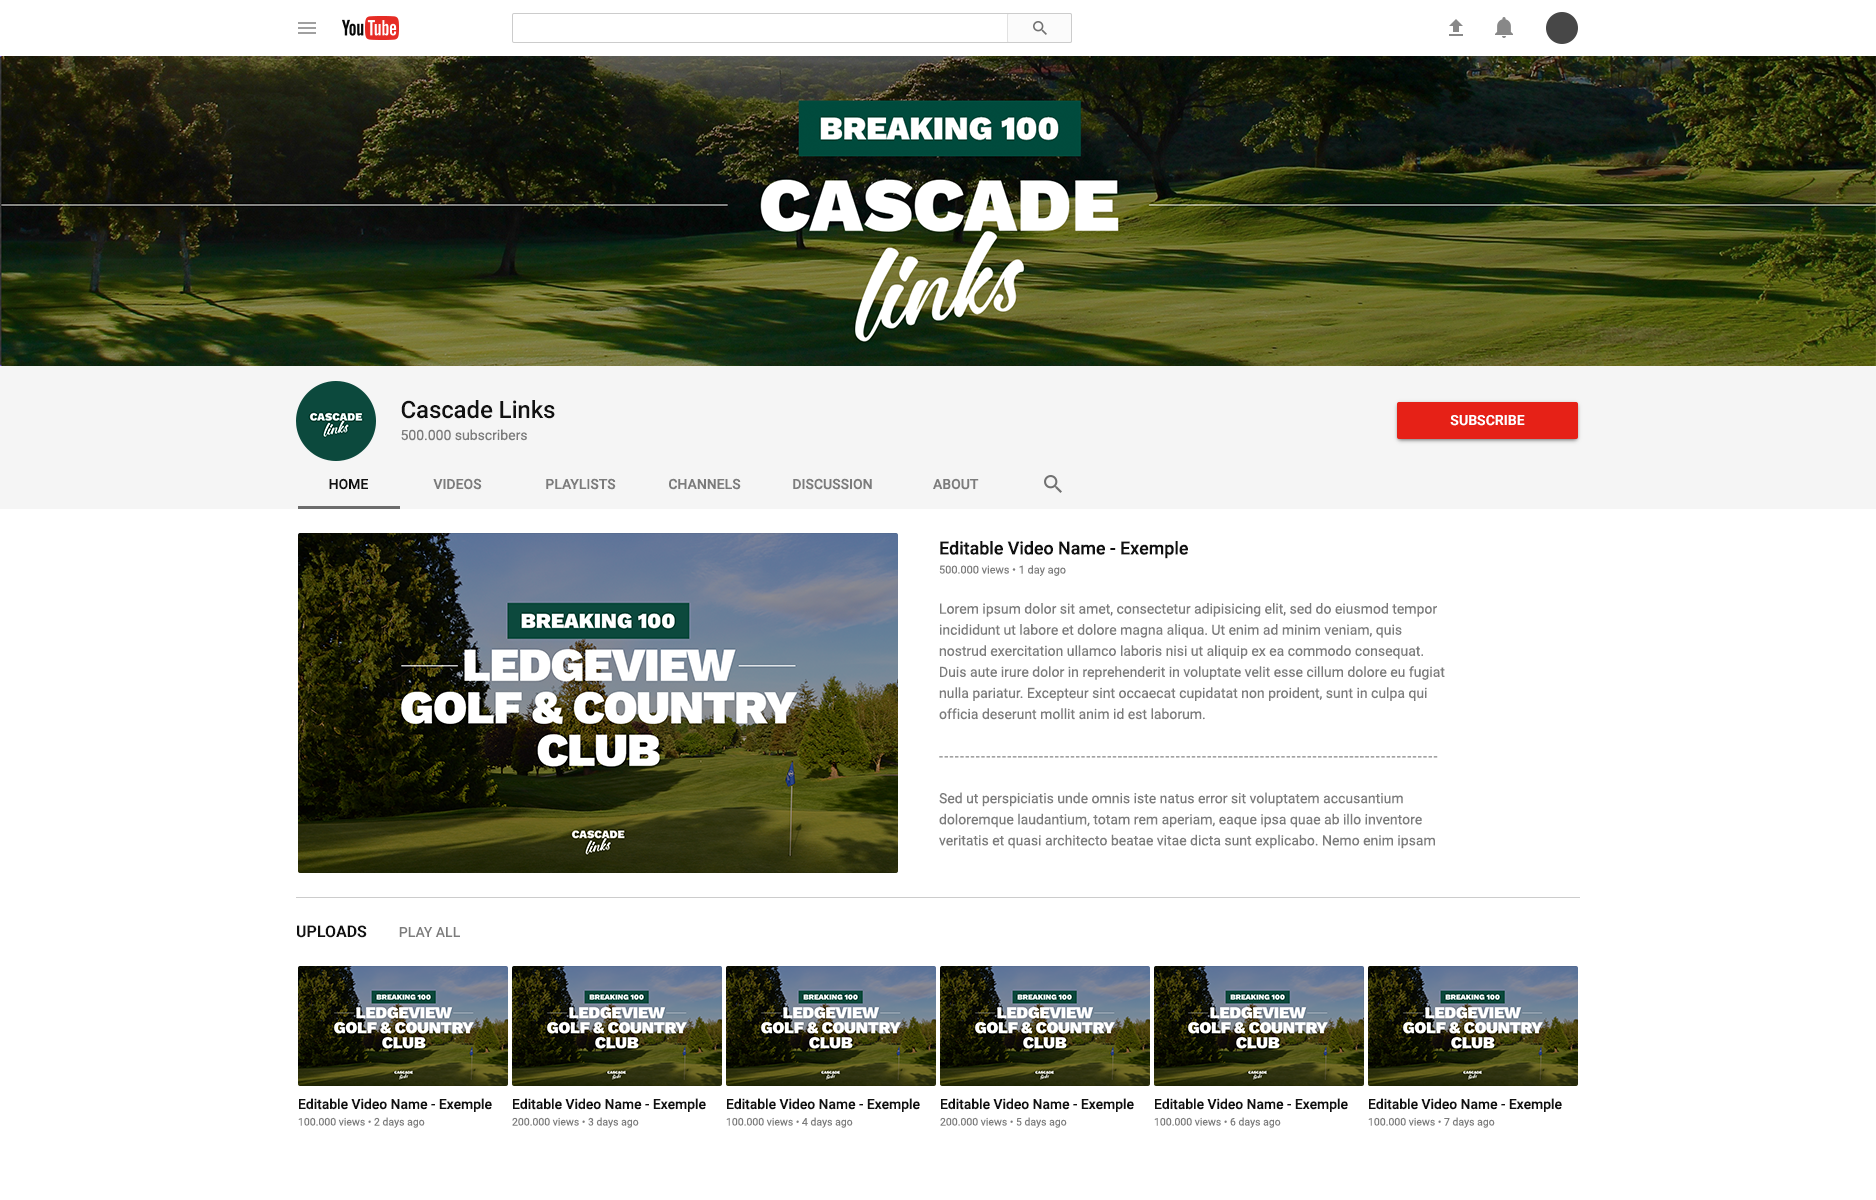 Mockup of a visual identity for a YouTube channel